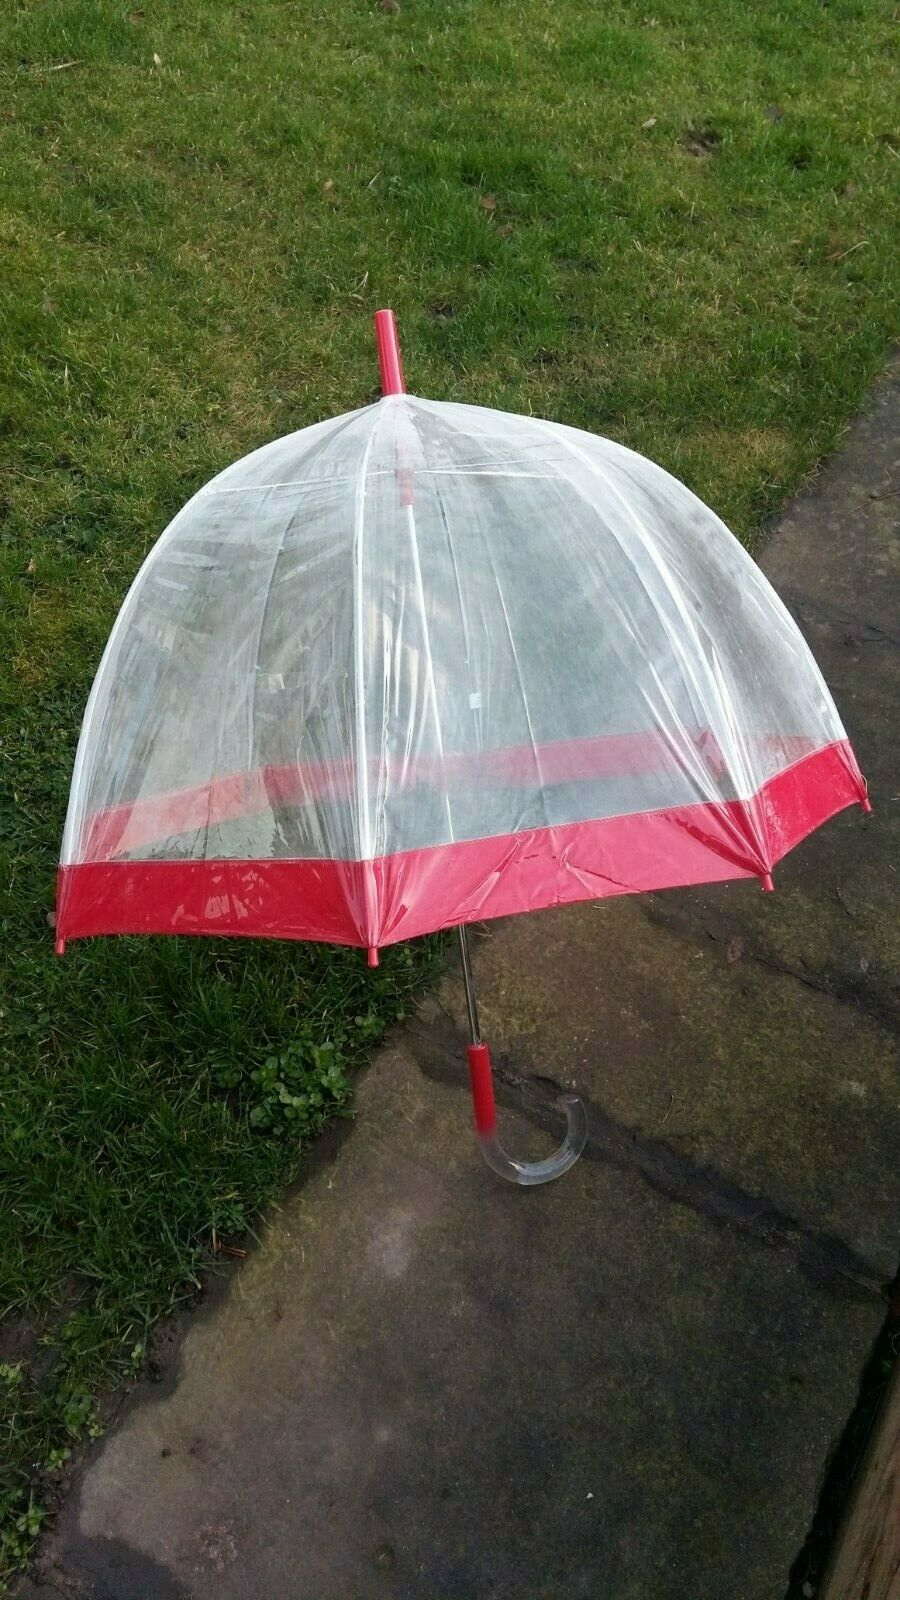 8 Quality Dome Totes PVC Wedding umbrellas bordered in red